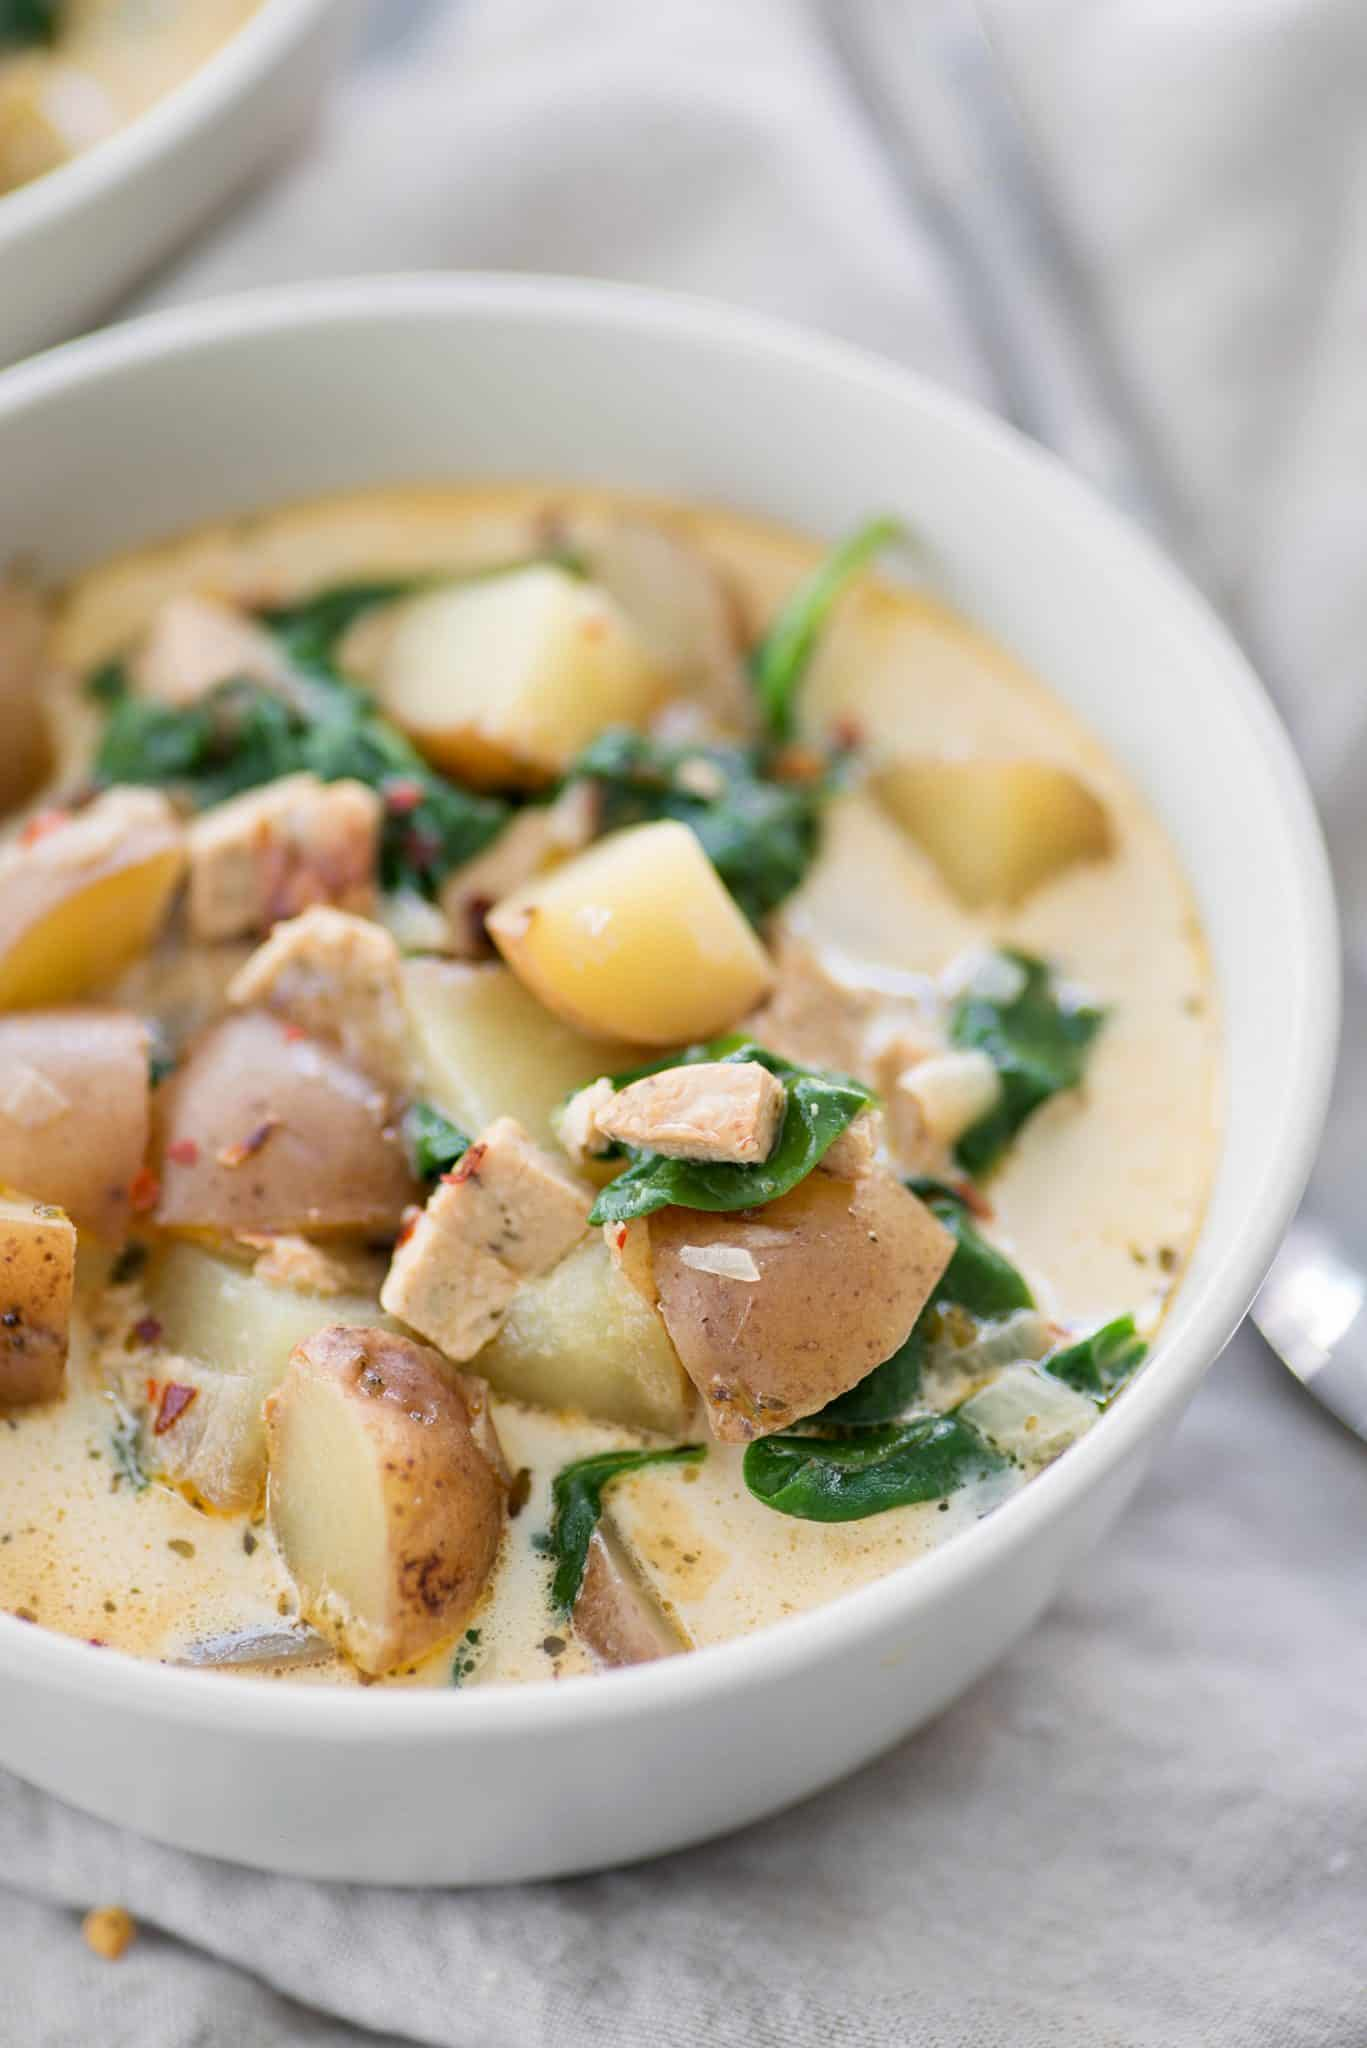 Potato, Spinach and Sausage Soup. You are going to love this vegan and gluten-free soup! Similar to Olive Garden's zuppa toscana, but healthier! | www.delishknowledge.com